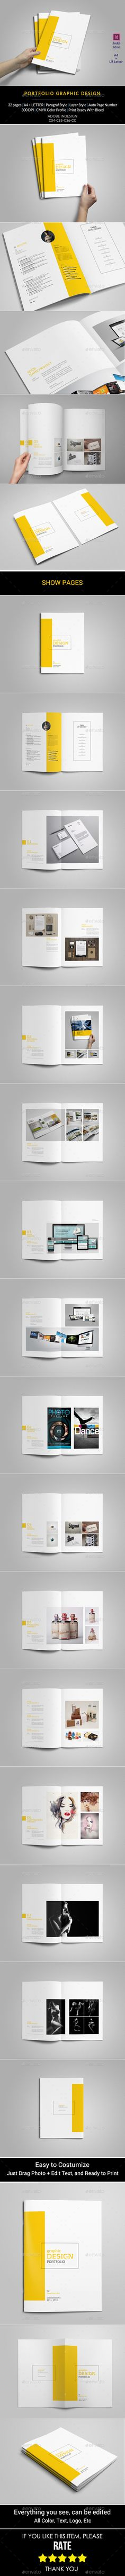 This is 32 page minimal brochure template is for designers working on product/graphic design portfolios interior design catalogues, product catalogues, and agency based projects. Just drop in your own images and texts, and its Ready to Print. Portfolio Design, Mise En Page Portfolio, Portfolio Layout, Template Portfolio, Book Design, Layout Design, Print Design, Web Design, Magazine Ideas